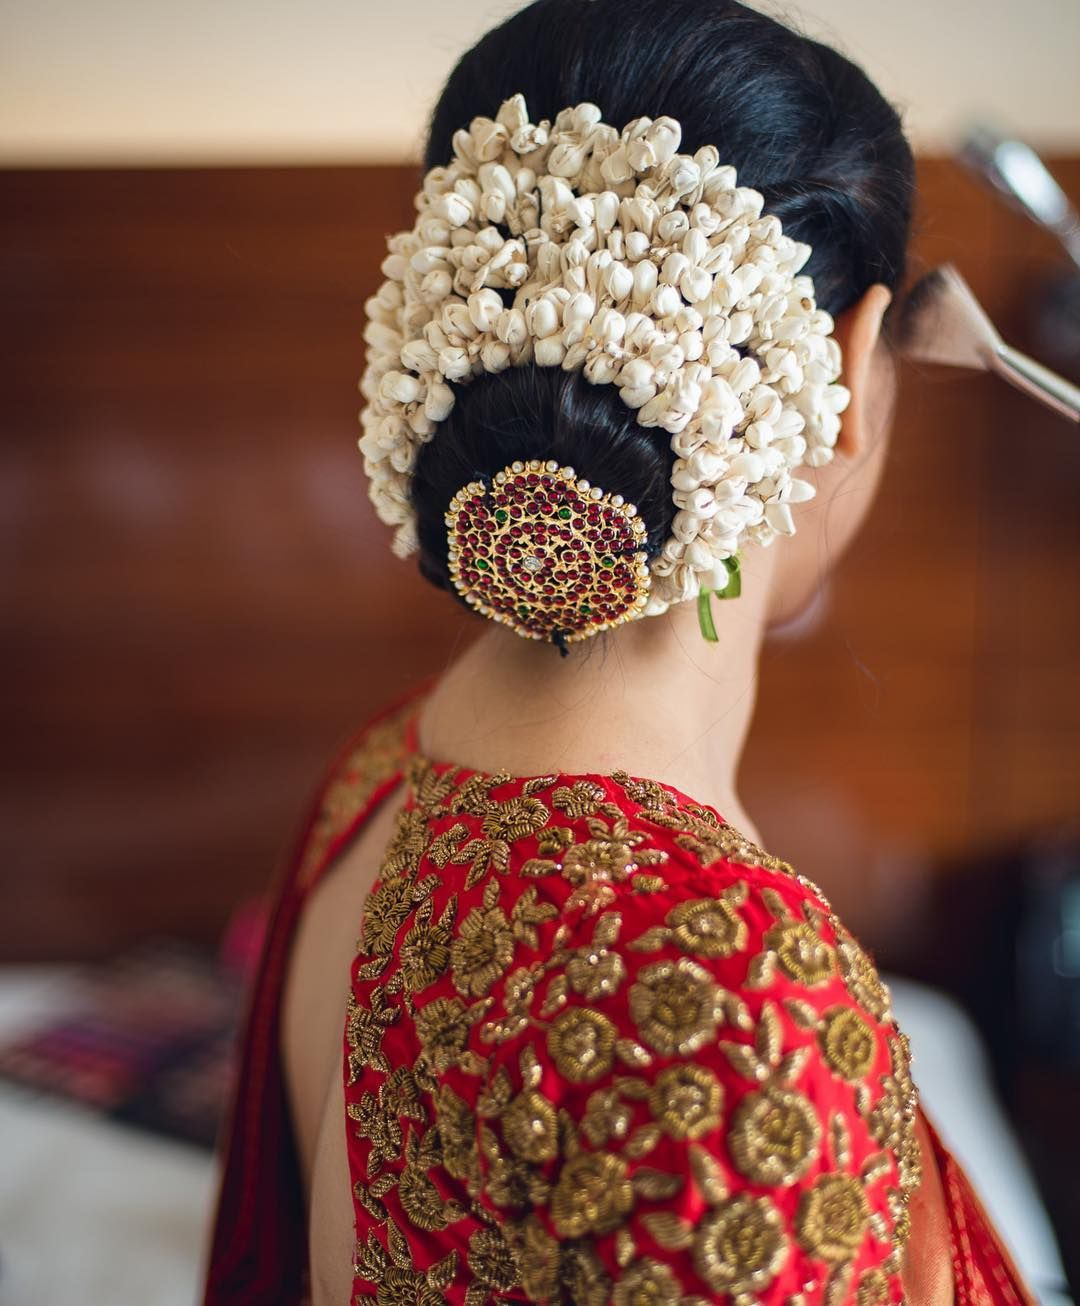 Shaadiwish Indianwedding Bun Floralbun Bridalhairstyle Weddinghairstyle Hairstyl Bridal Hair Buns South Indian Wedding Hairstyles Indian Bride Hairstyle